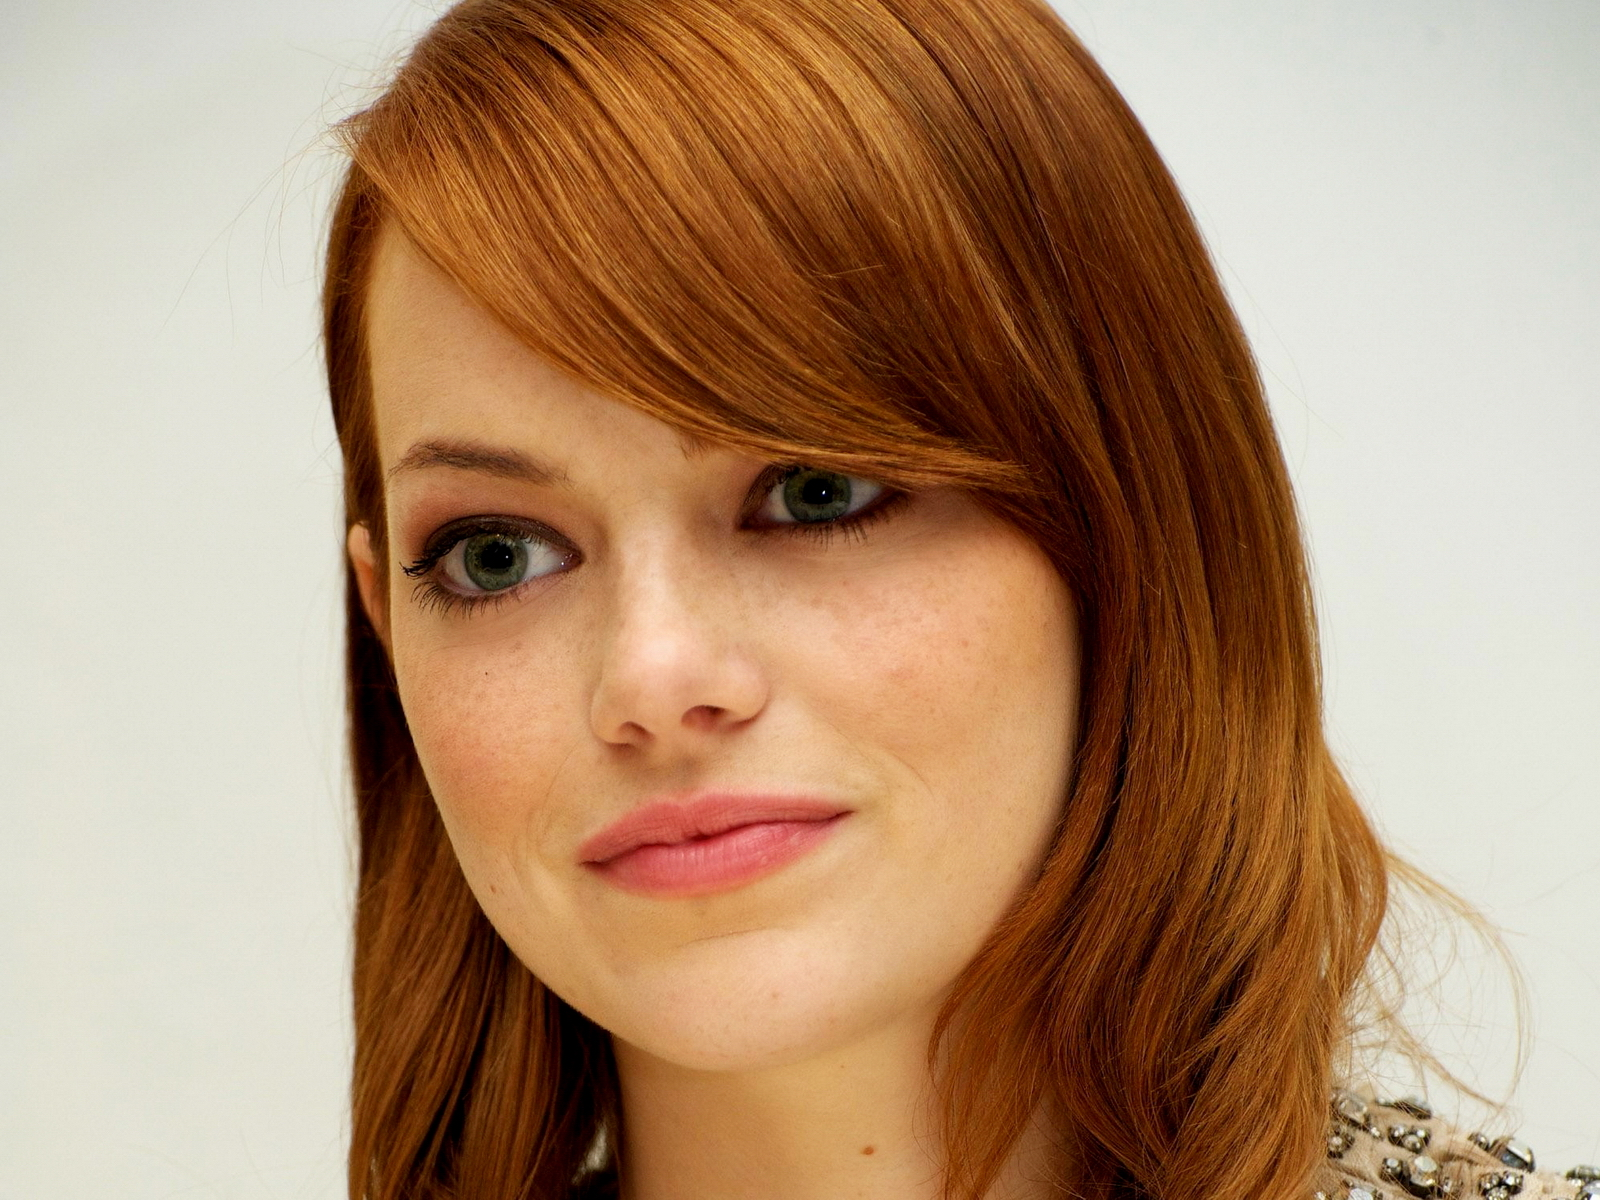 Beauty By Jessy Sexy Emma Stone iPhone wallpapers 1600x1200